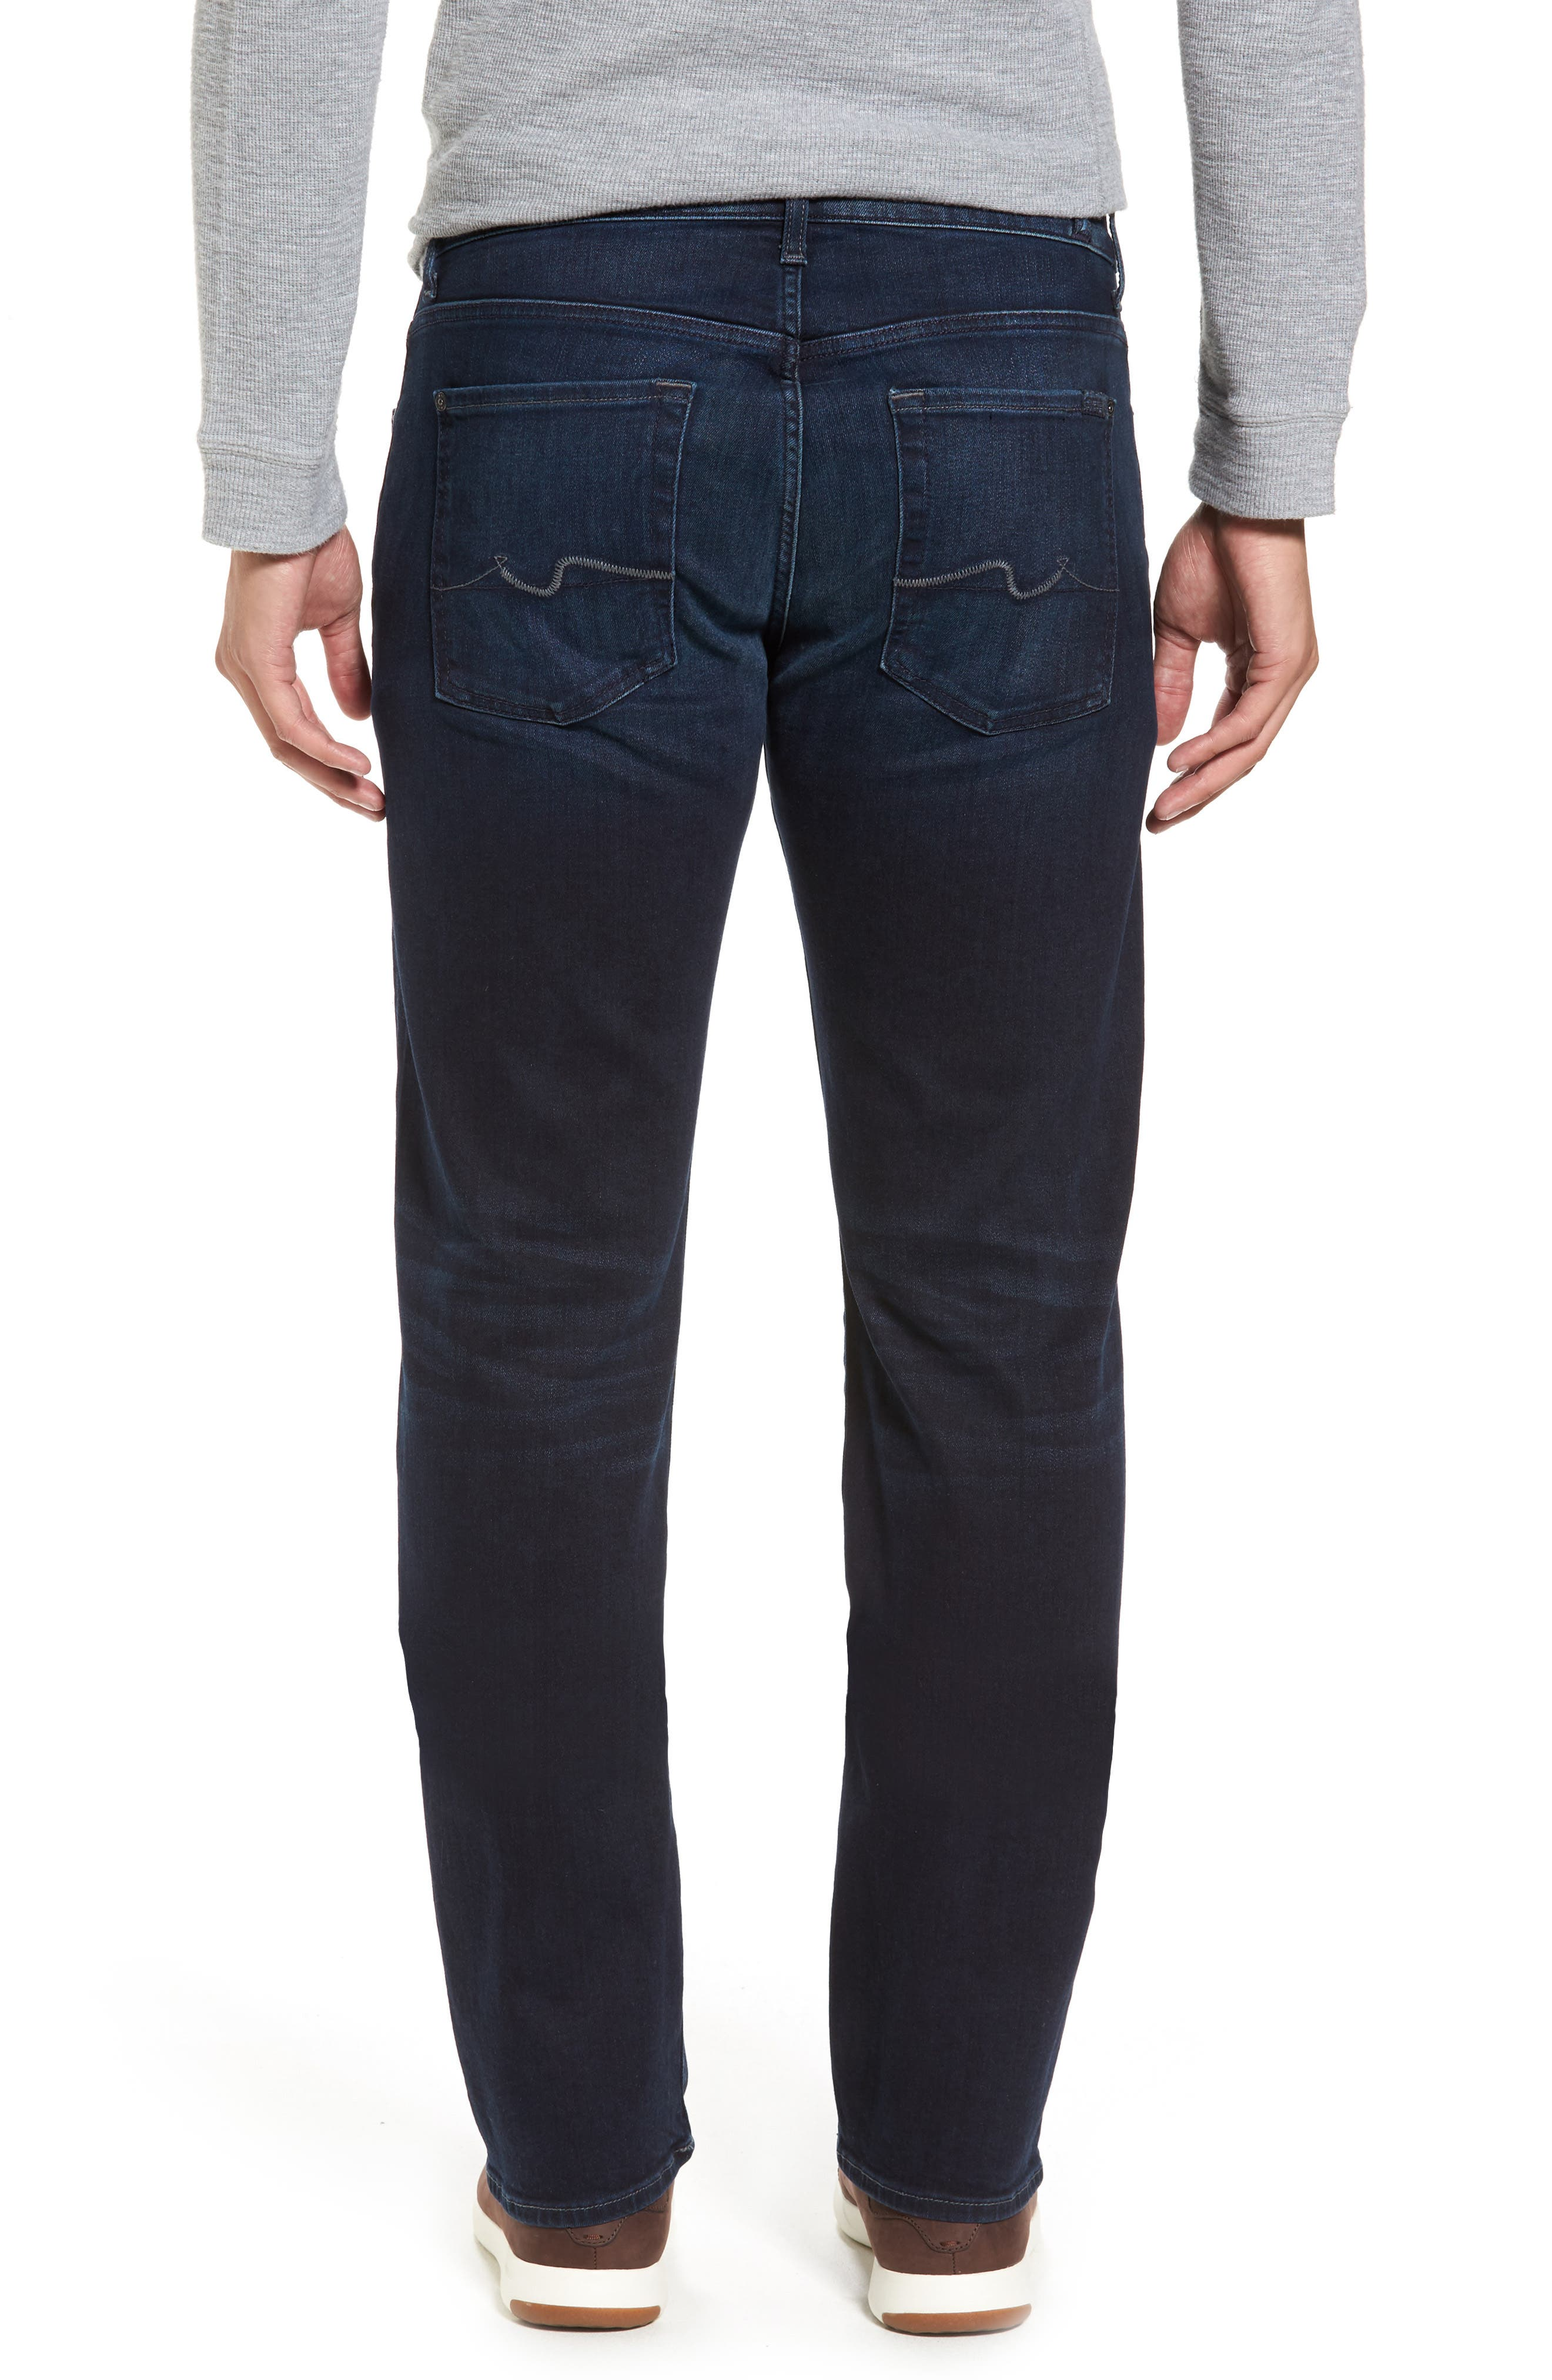 Austyn Relaxed Fit Jeans,                             Alternate thumbnail 2, color,